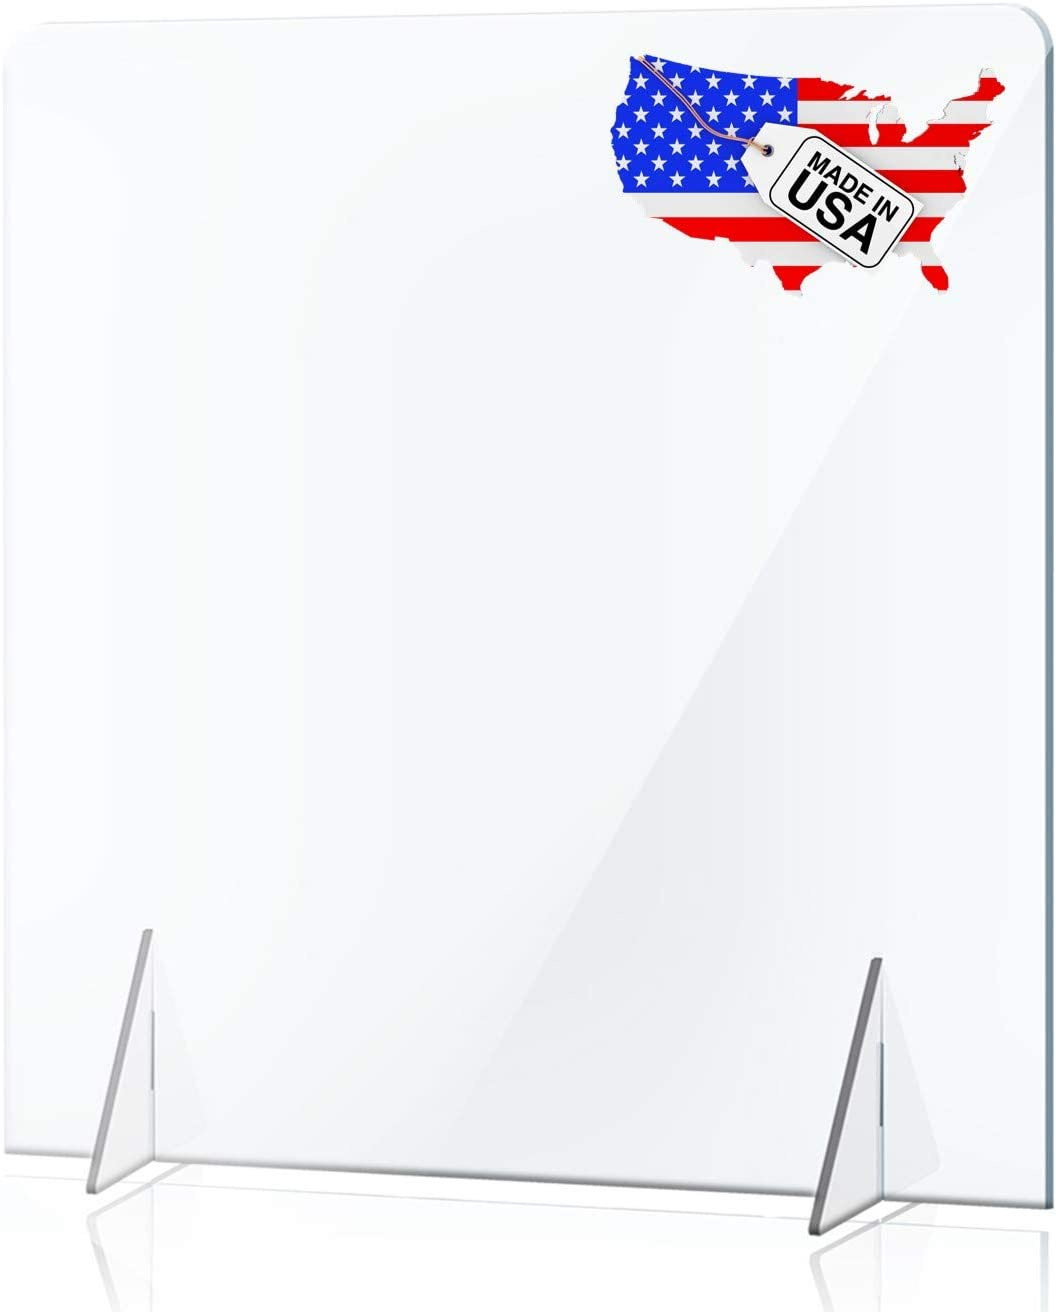 NO Cutout Sneeze Guard Panel for Counter and Desk, Portable Clear Acrylic Shield No Opening, Protective Plexiglass Shield Without Opening for Office, School, and Retail Store